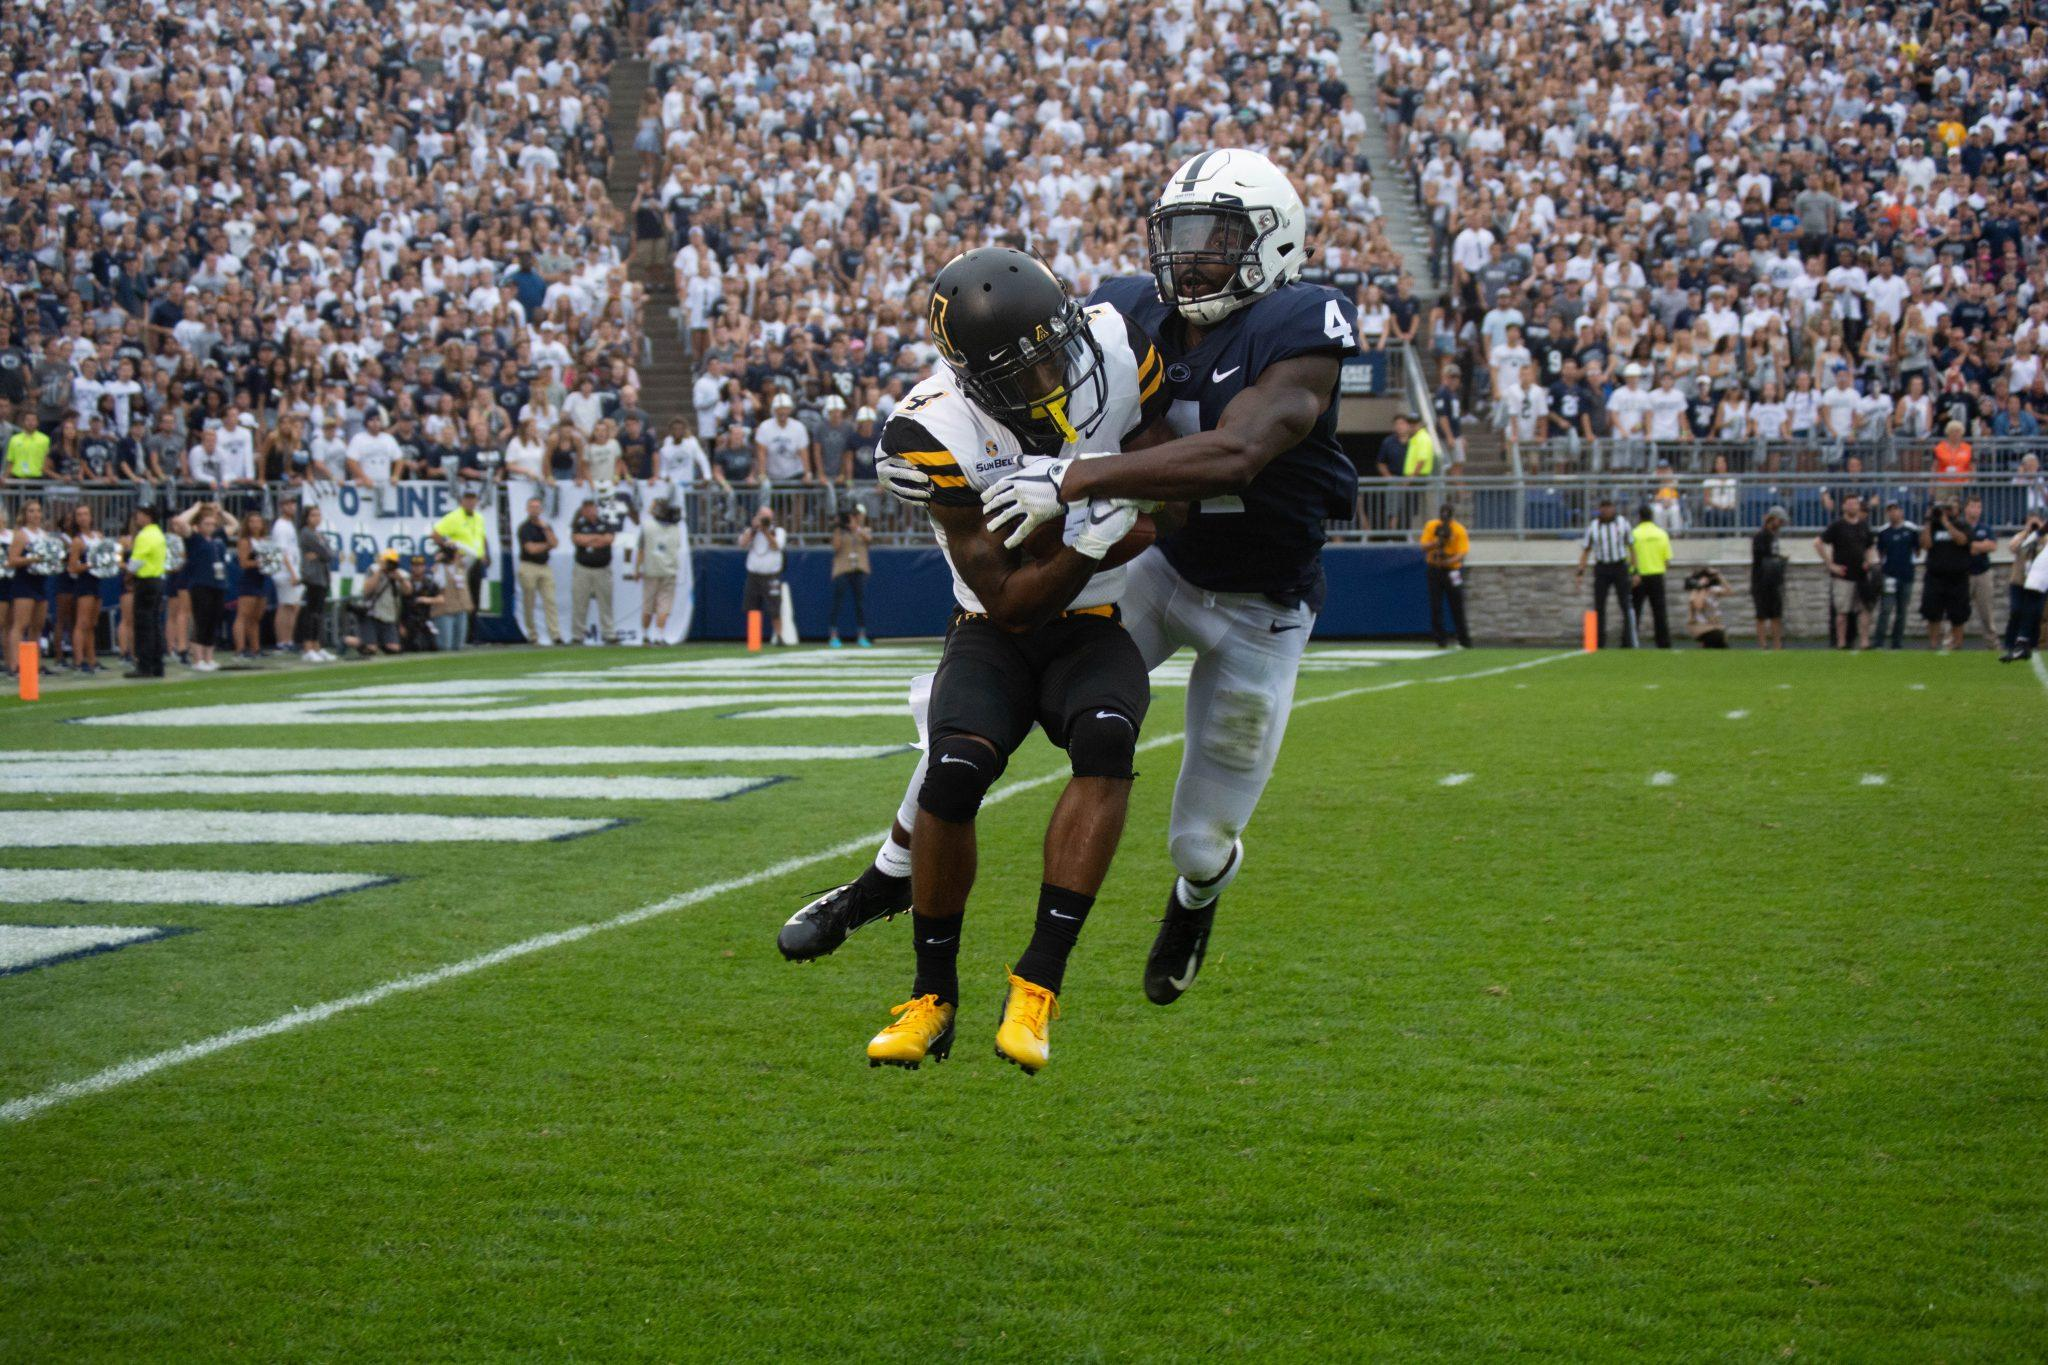 Graduate+transfer+wide+receiver+Dominique+Heath+fights+for+the+ball+against+a+Penn+State+defensive+back.+App+State+lost+to+the+Nittany+Lions+45-38.